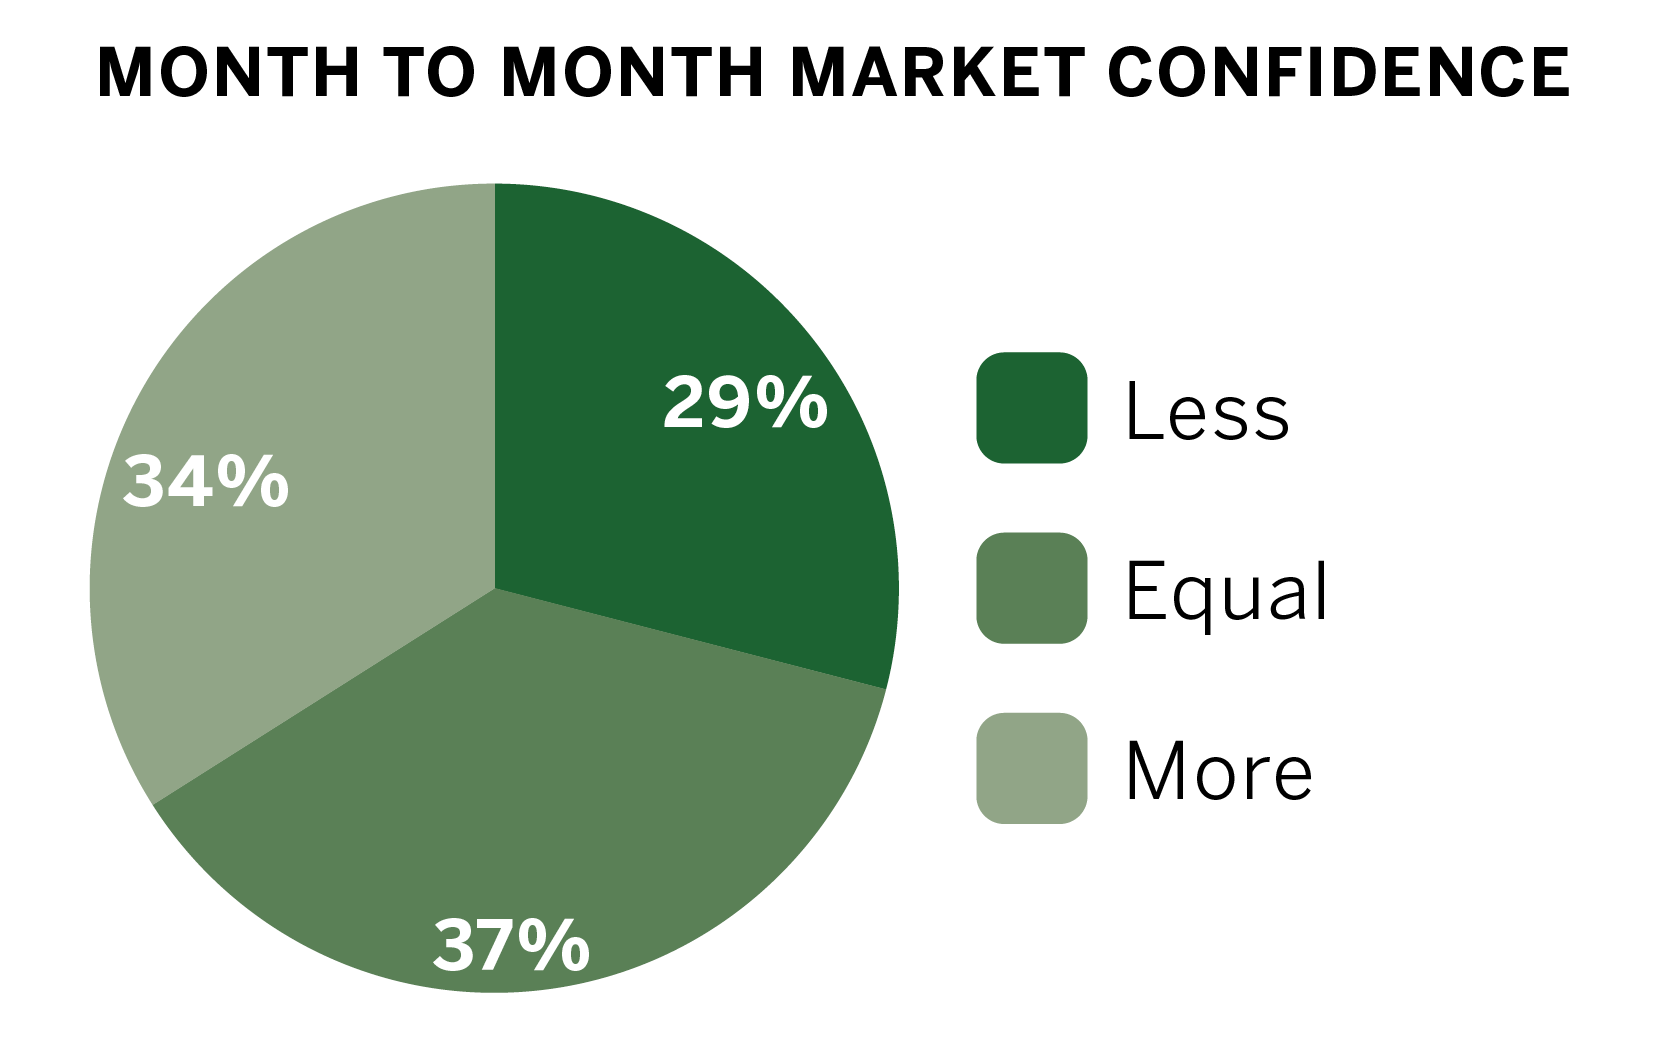 uncertainty looming as mixed confidence in pie chart